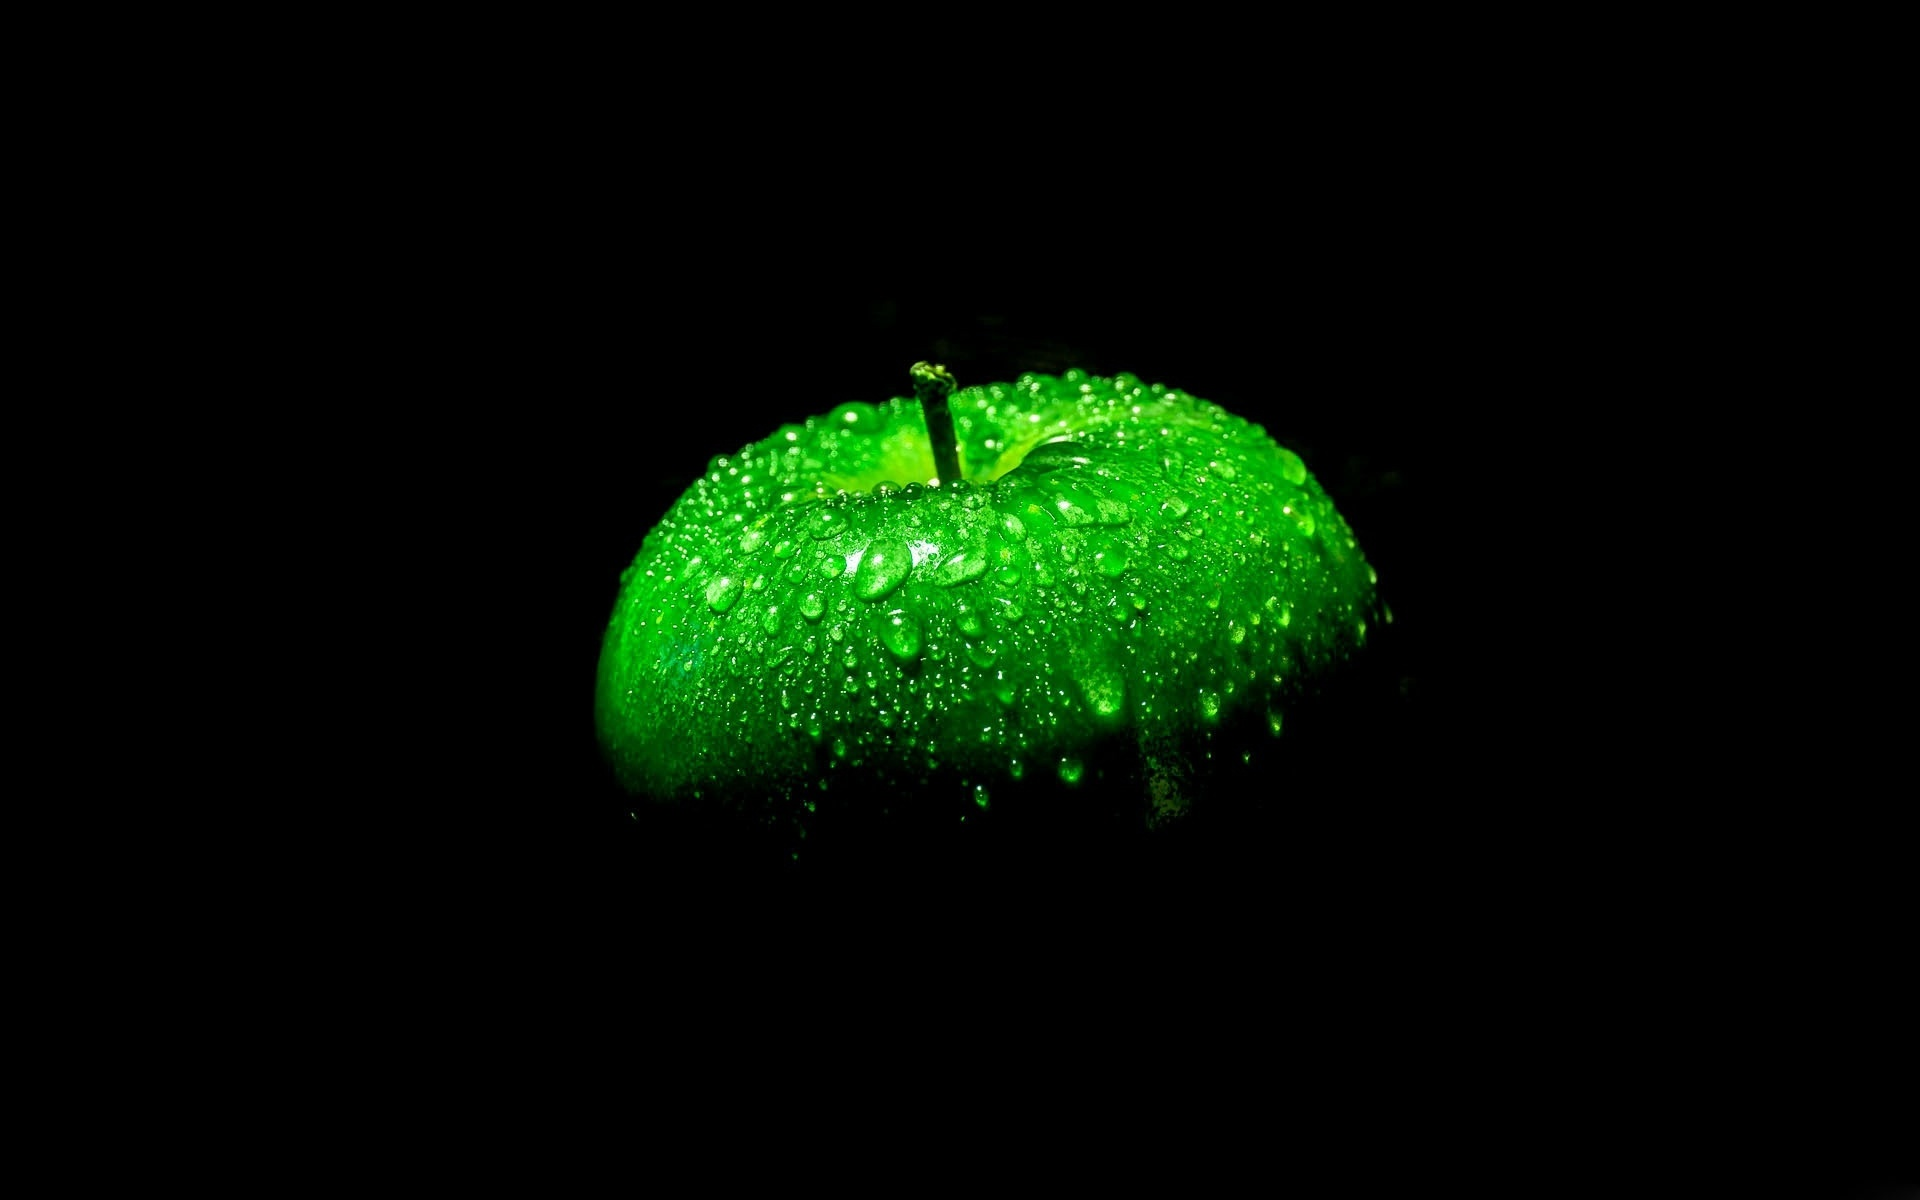 Wallpaper Green Apple Black Background 1920x1200 Hd Picture Image